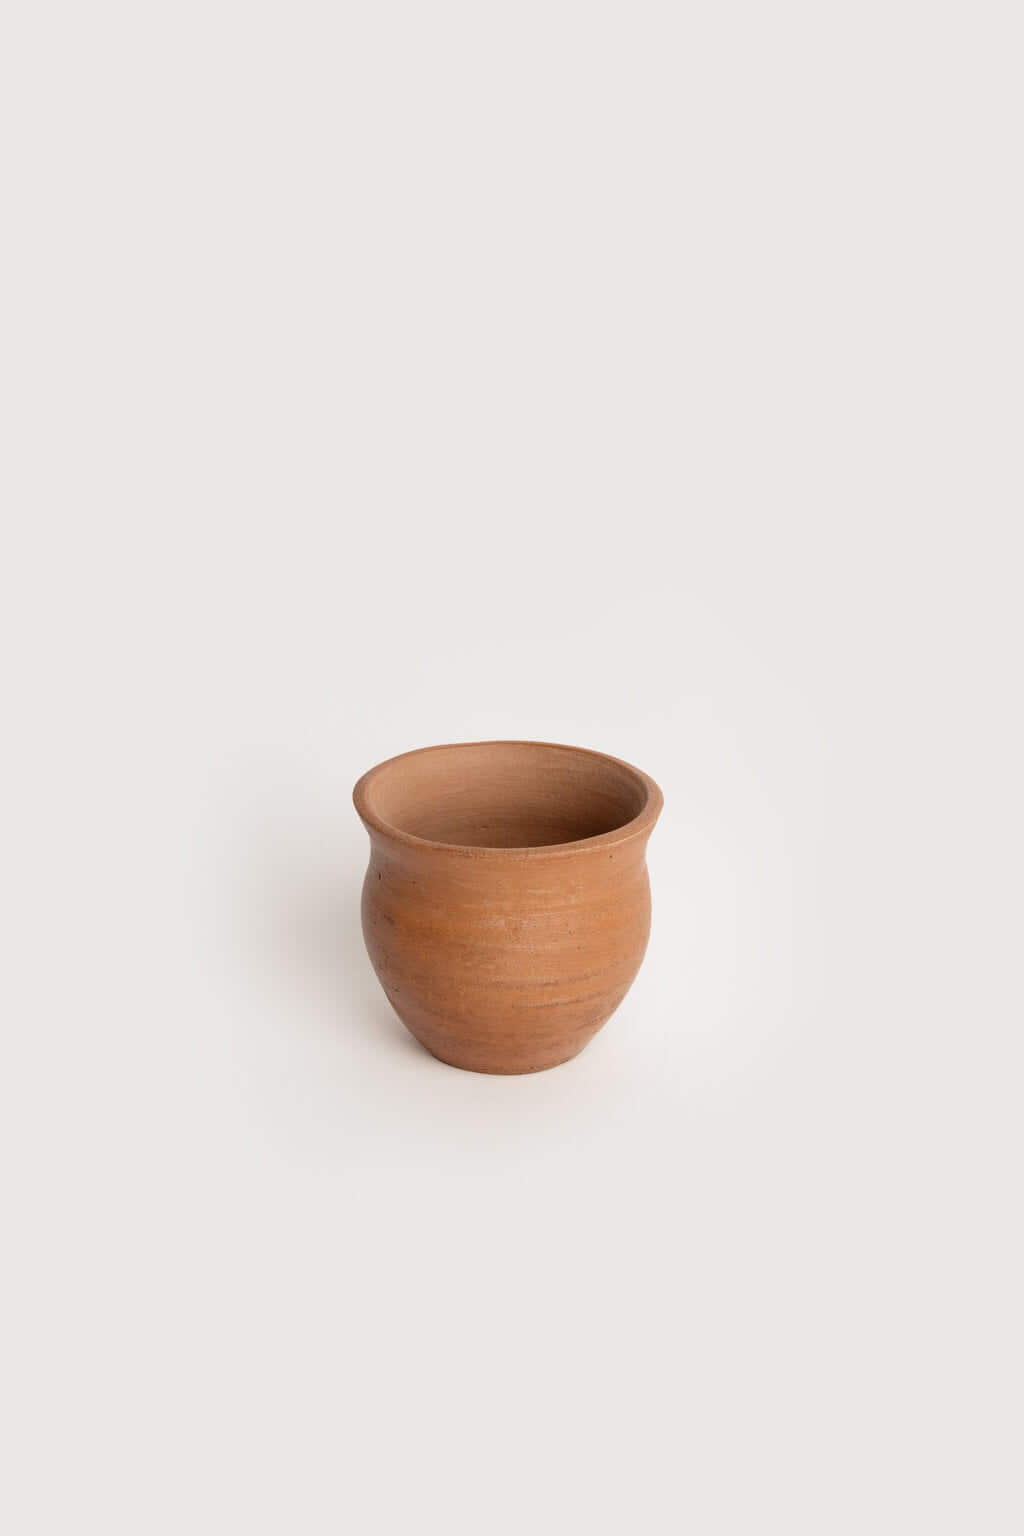 Terracotta Cup 3685 Clay 2